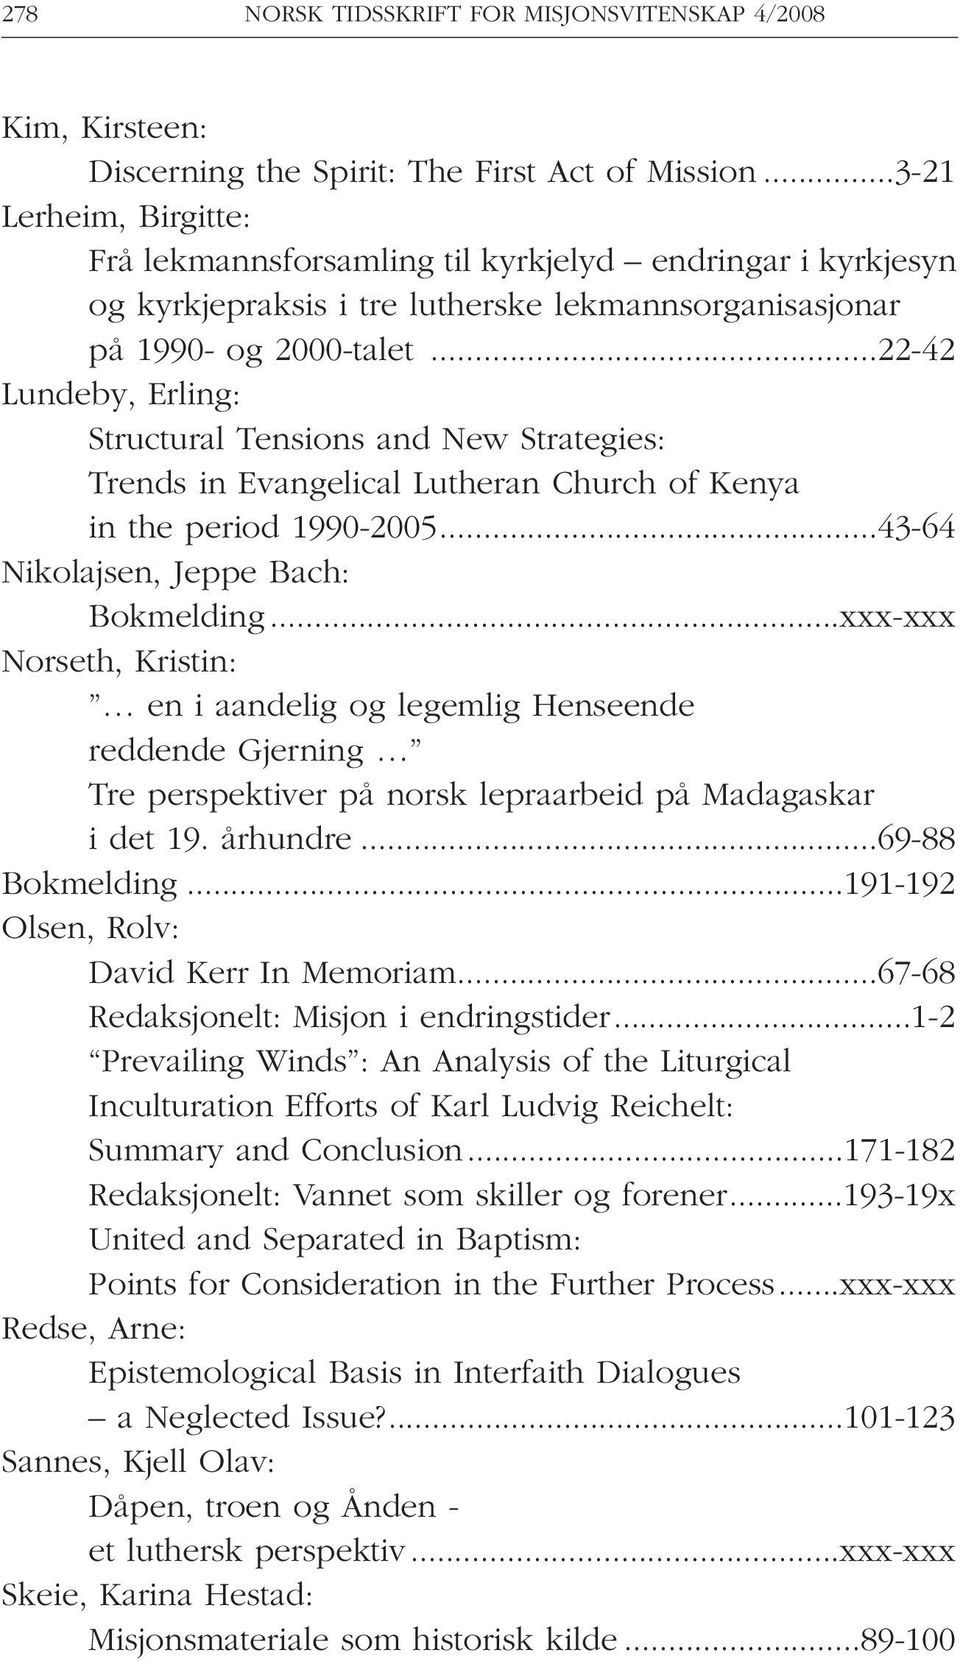 ..22-42 Lundeby, Erling: Structural Tensions and New Strategies: Trends in Evangelical Lutheran Church of Kenya in the period 1990-2005...43-64 Nikolajsen, Jeppe Bach: Bokmelding.